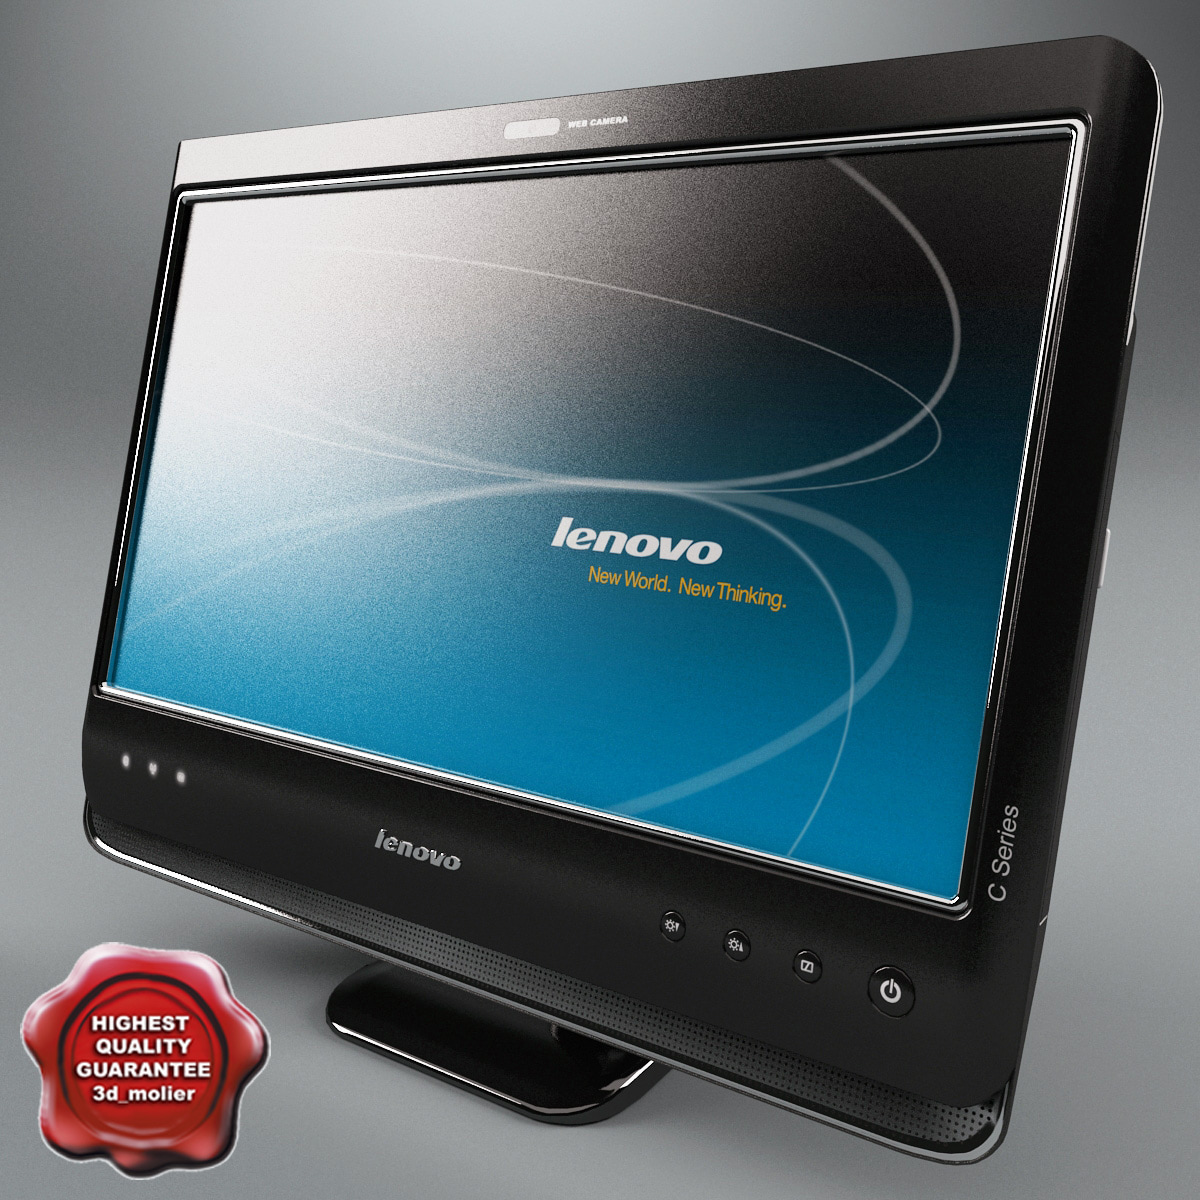 Desktop_PC_Lenovo_C205_00.jpg